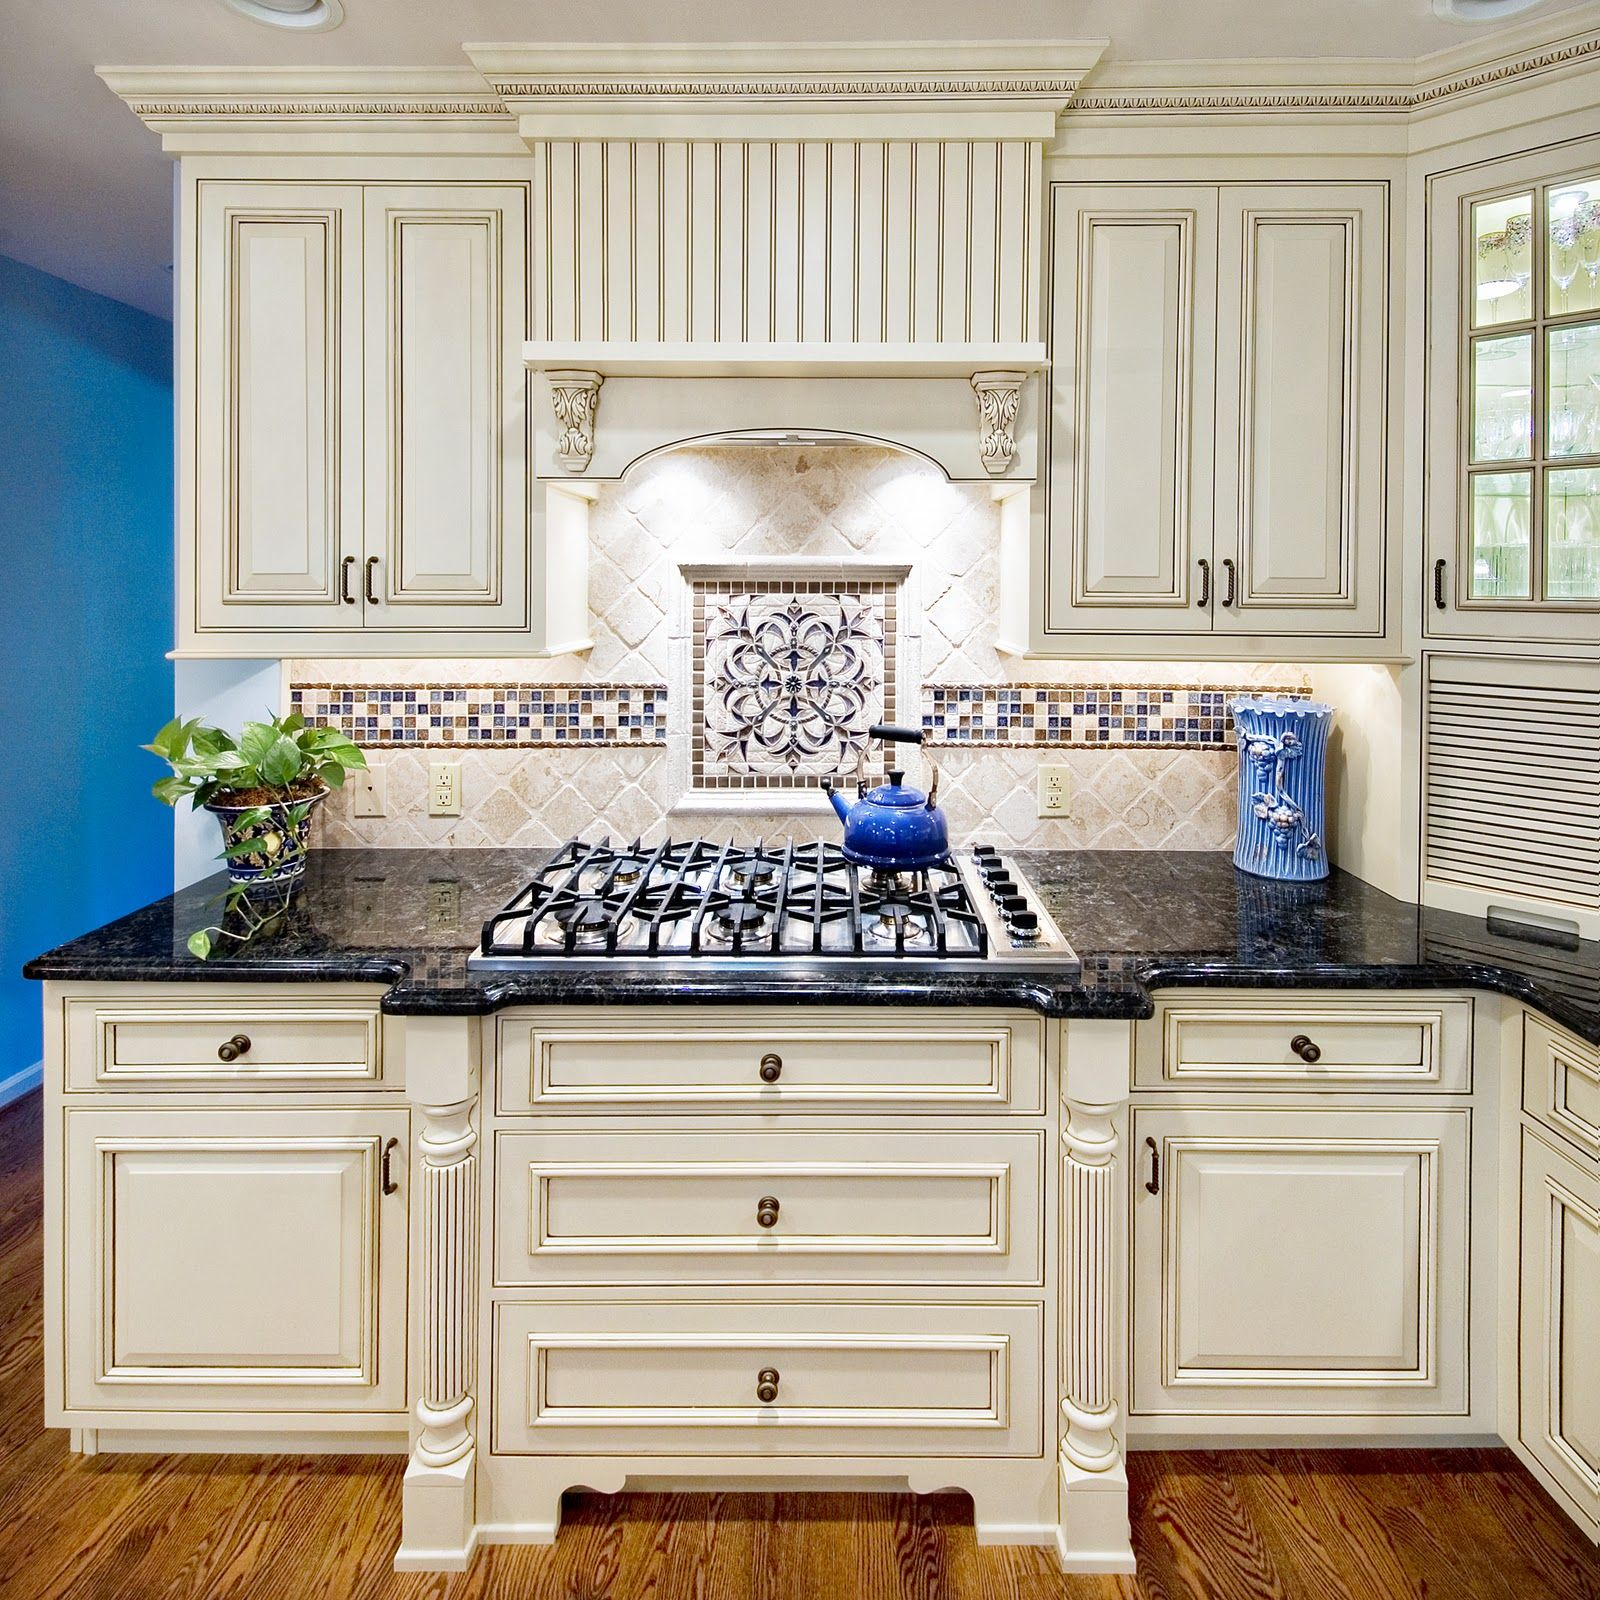 Kitchen Cream Cabinets Dark Blue Counters Blue Accent Backsplash Jpg Jpeg Image 16 Kitchen Backsplash Designs Kitchen Remodel French Country Kitchen Cabinets